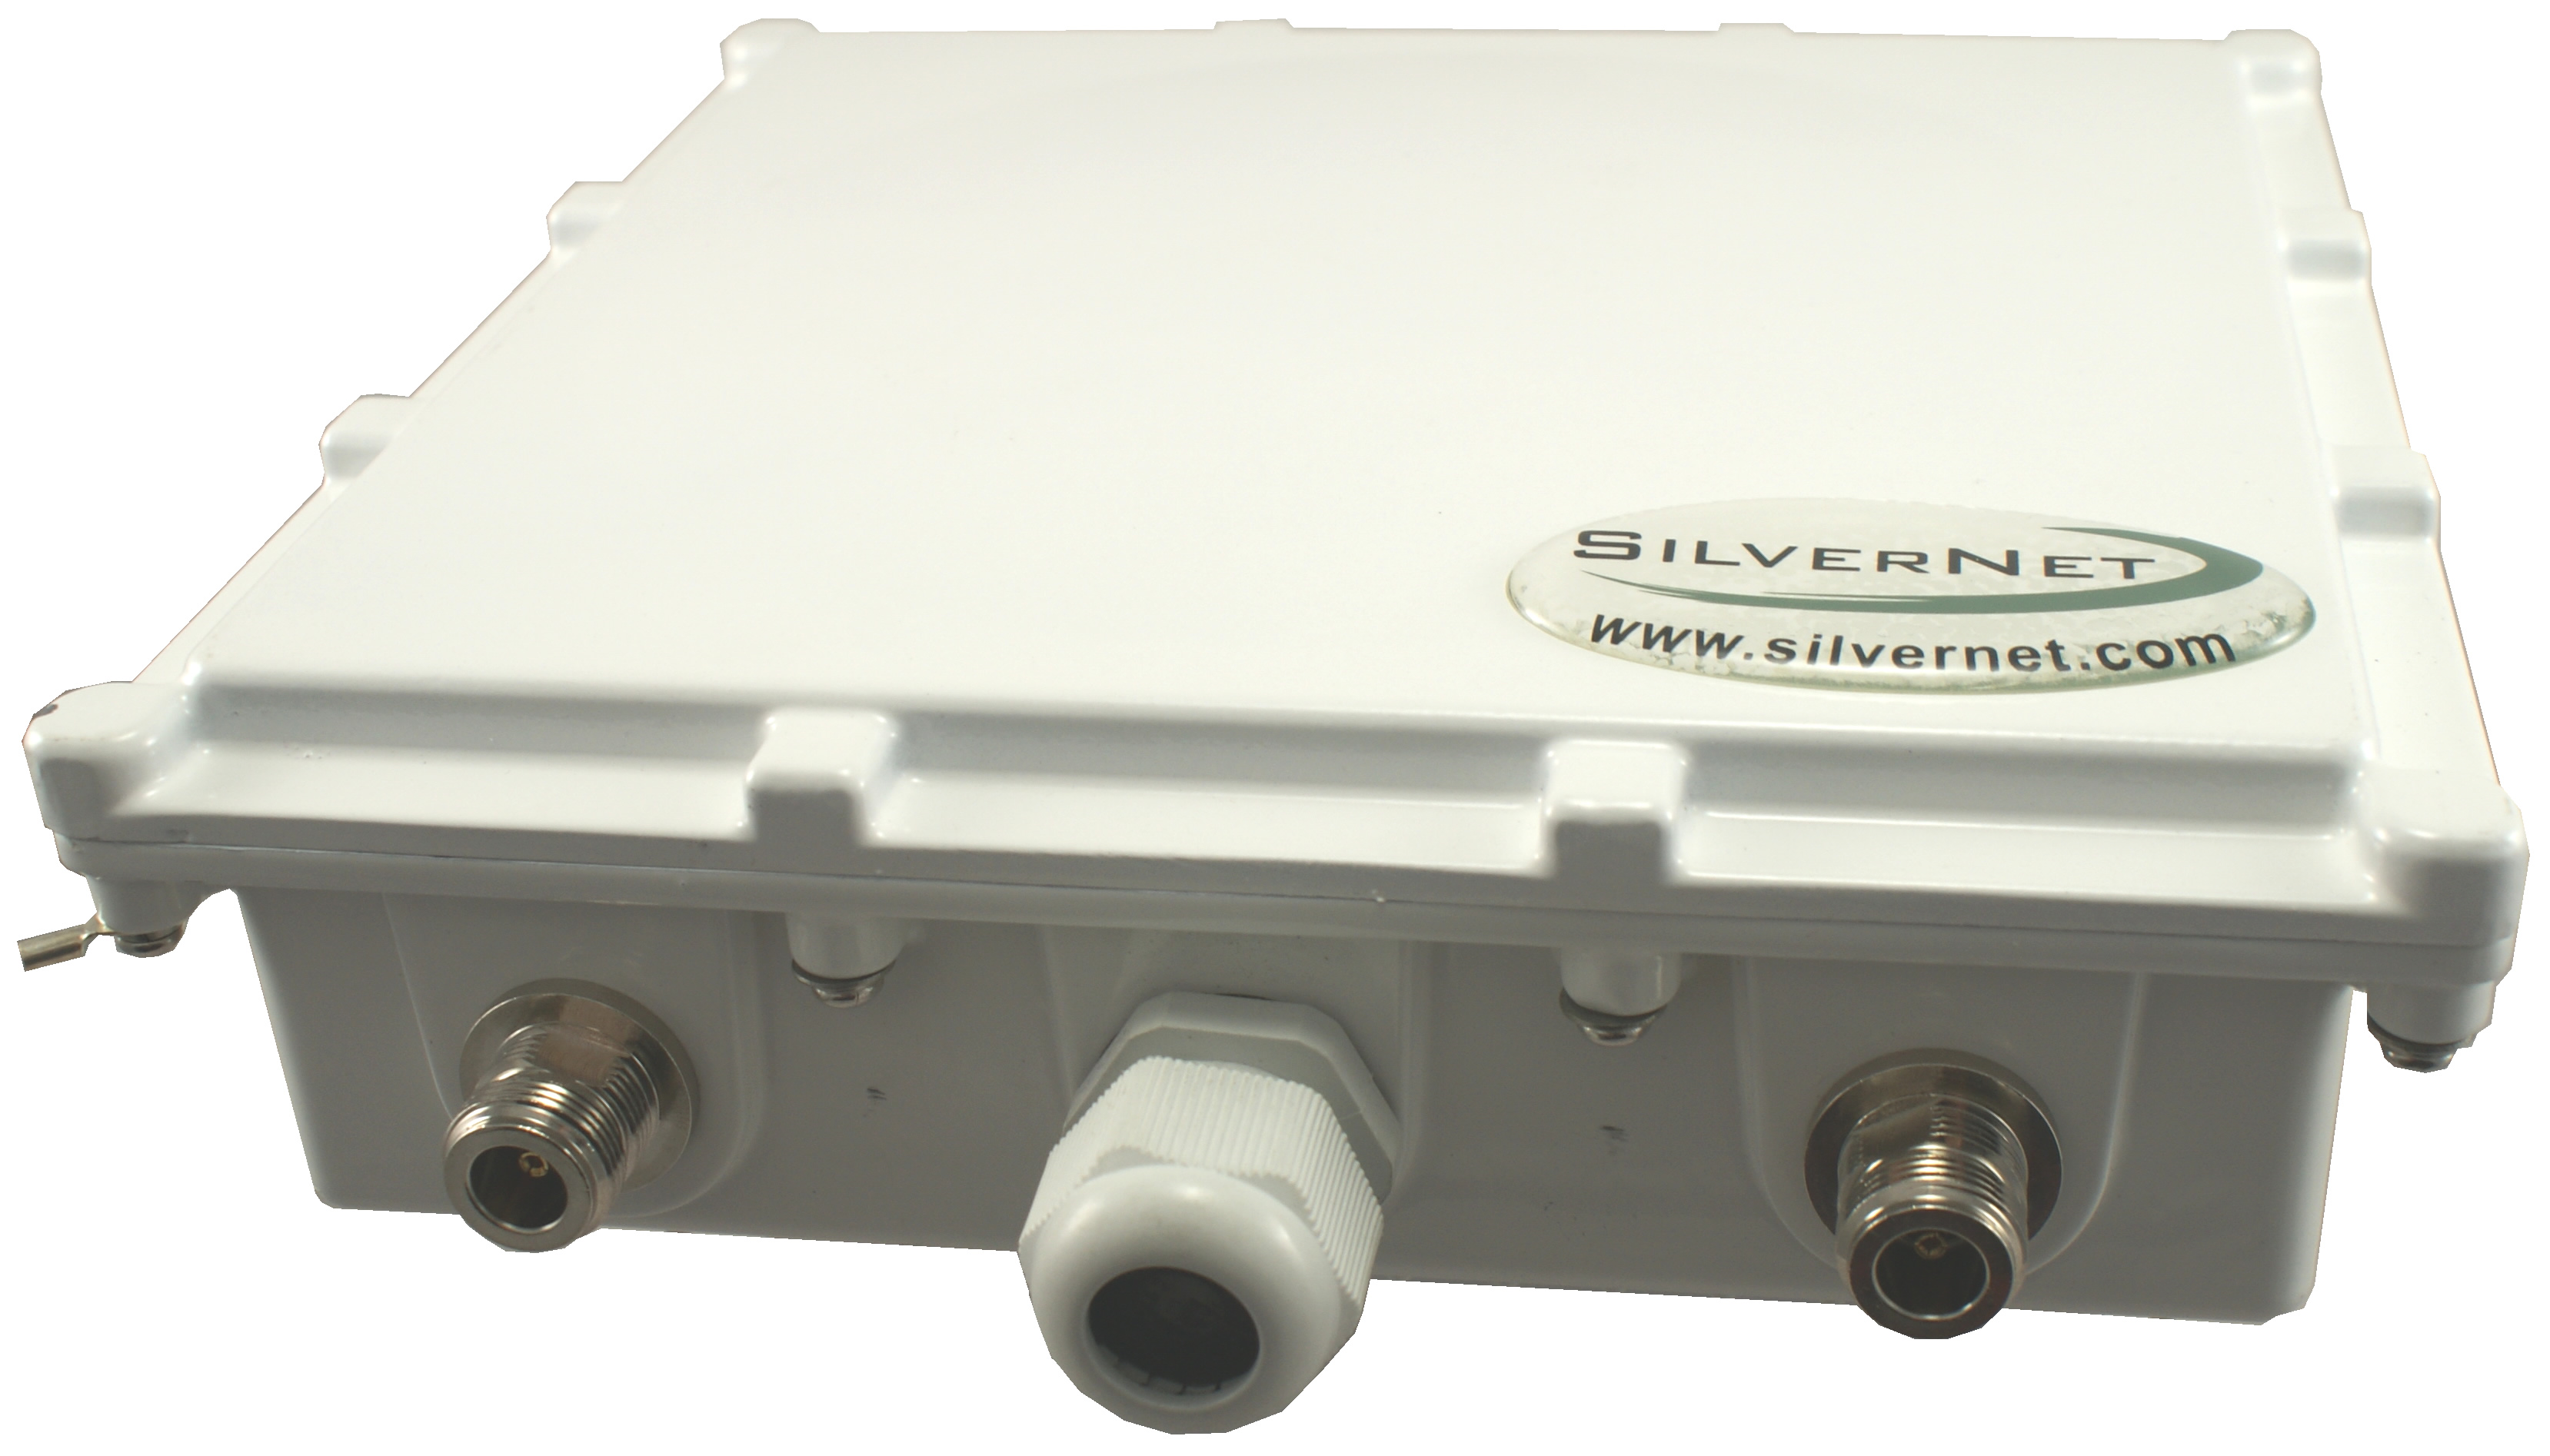 Multipoint - up to 95Mbps. BASE/AP - collector - Omni or Sector antenna required